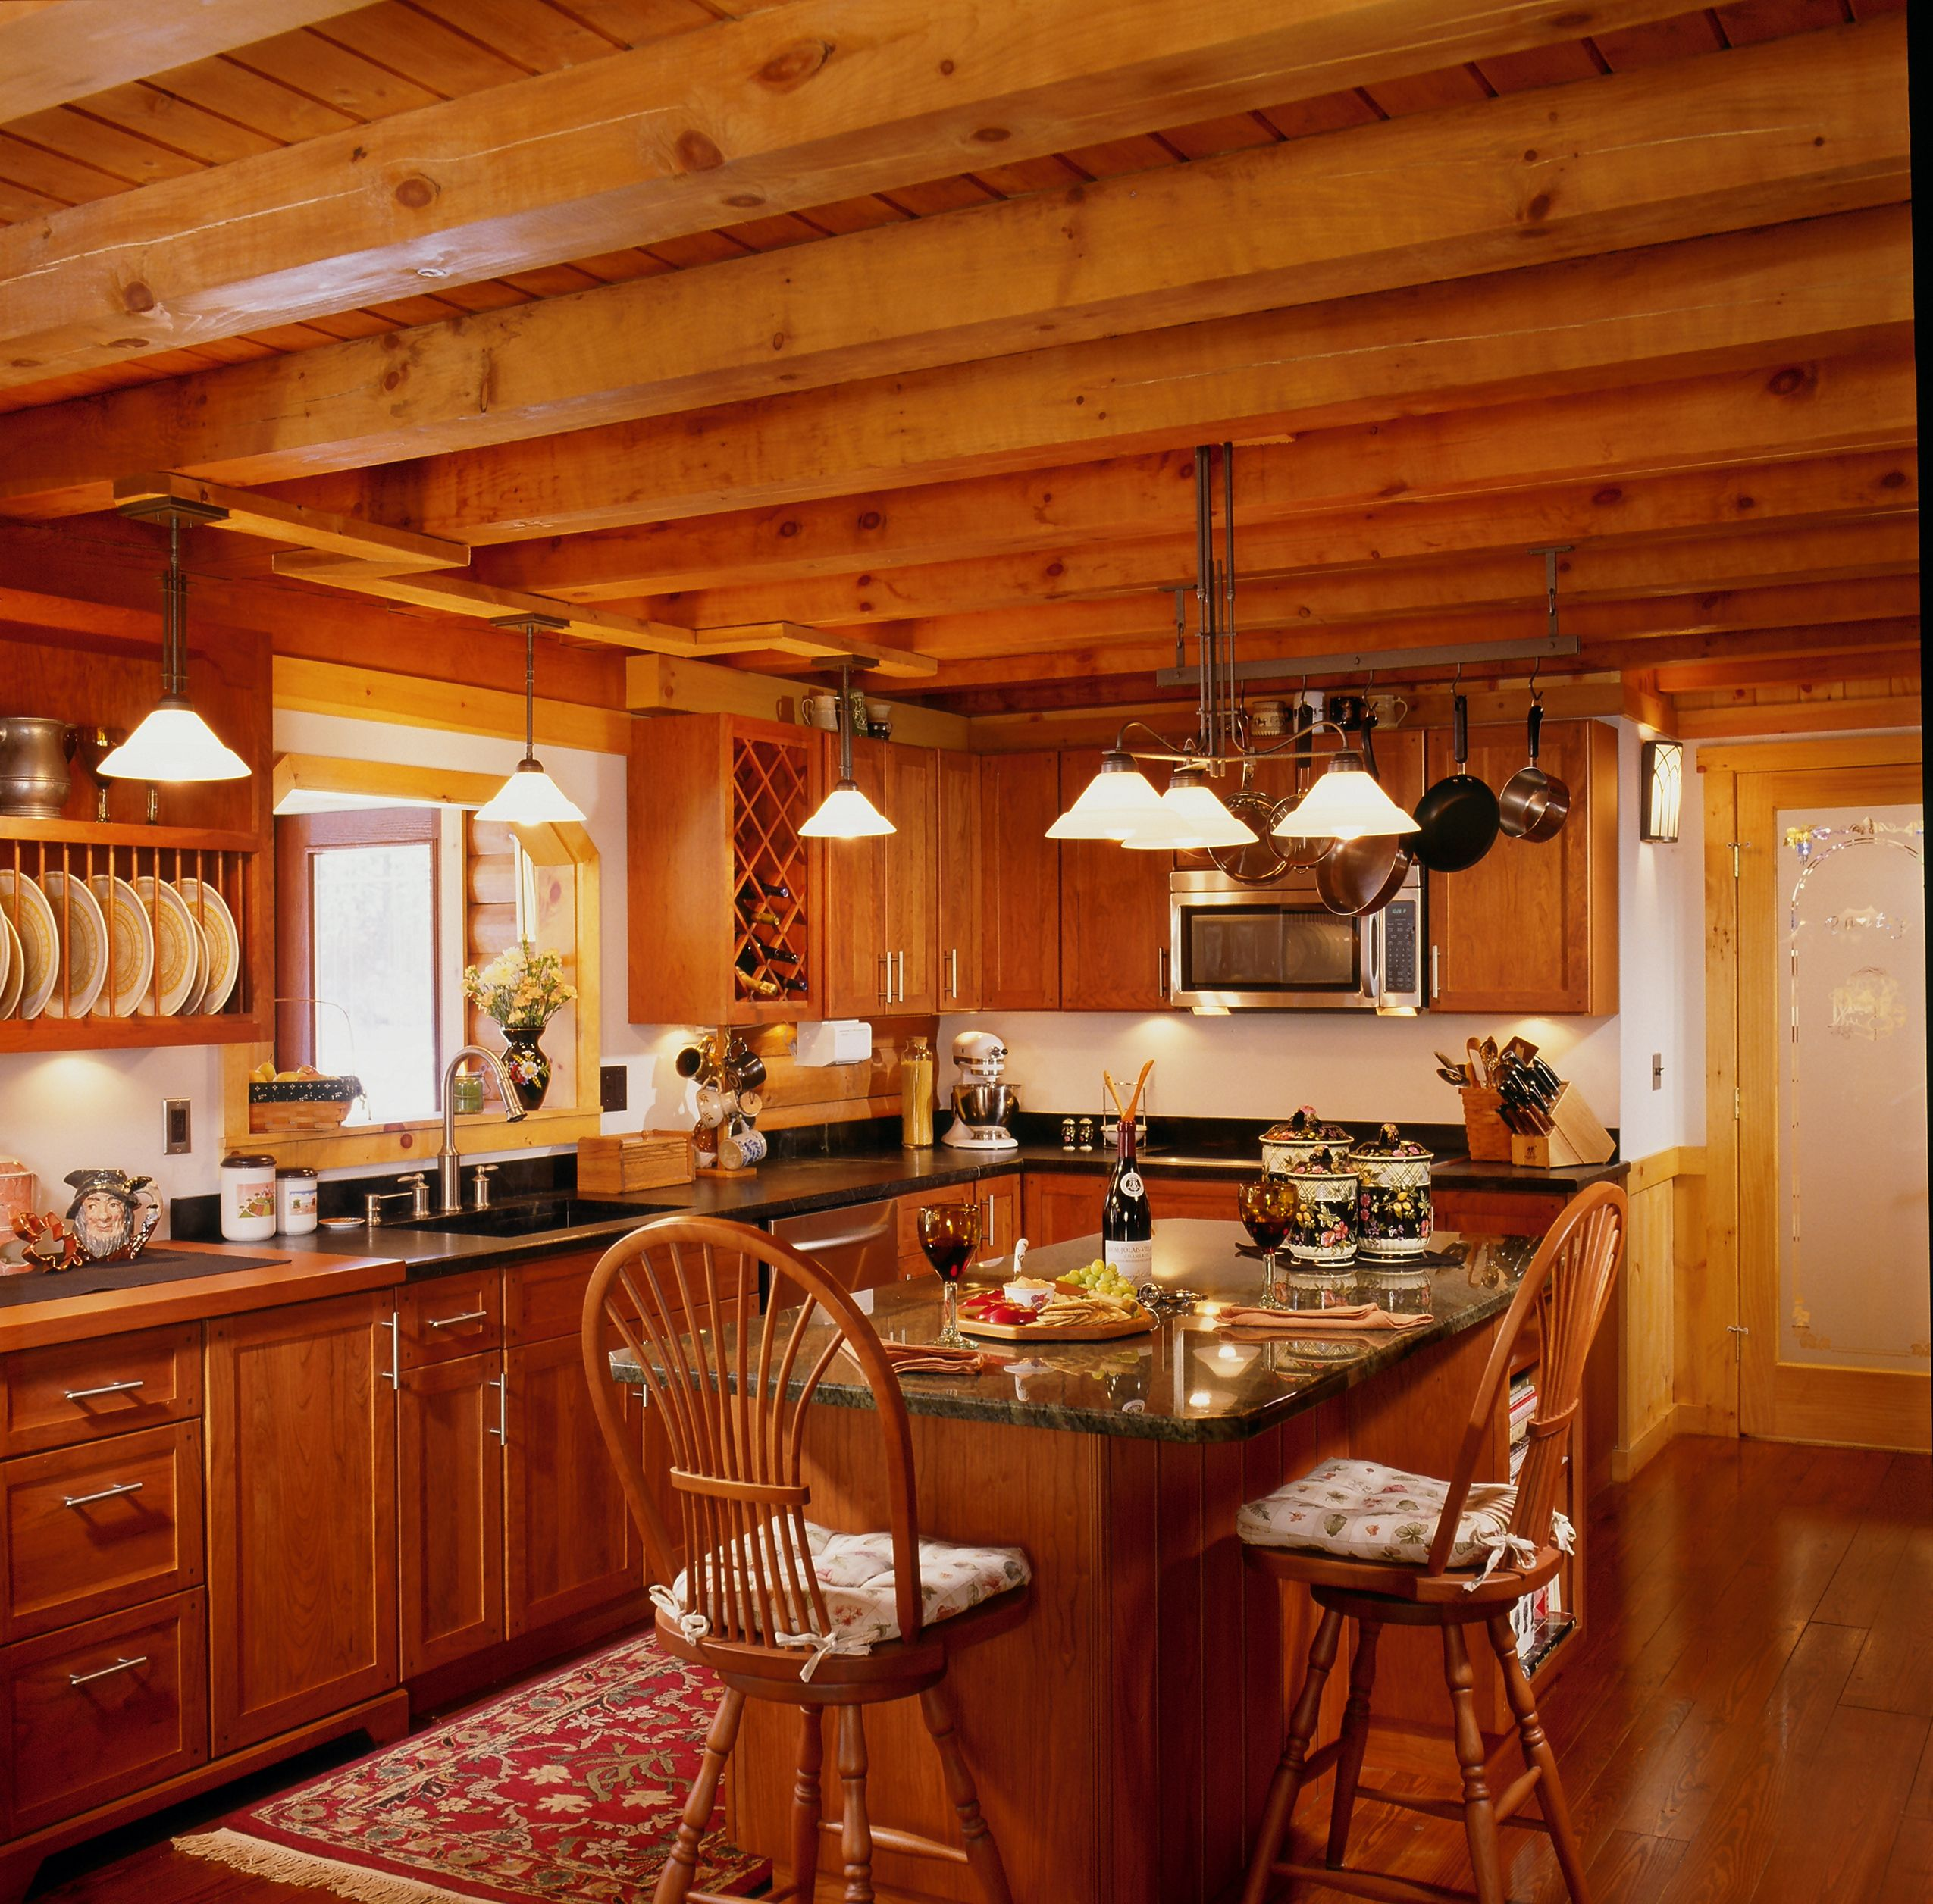 19 Log Cabin Home Décor Ideas: Log Home Kitchen With Island And Beam Ceiling